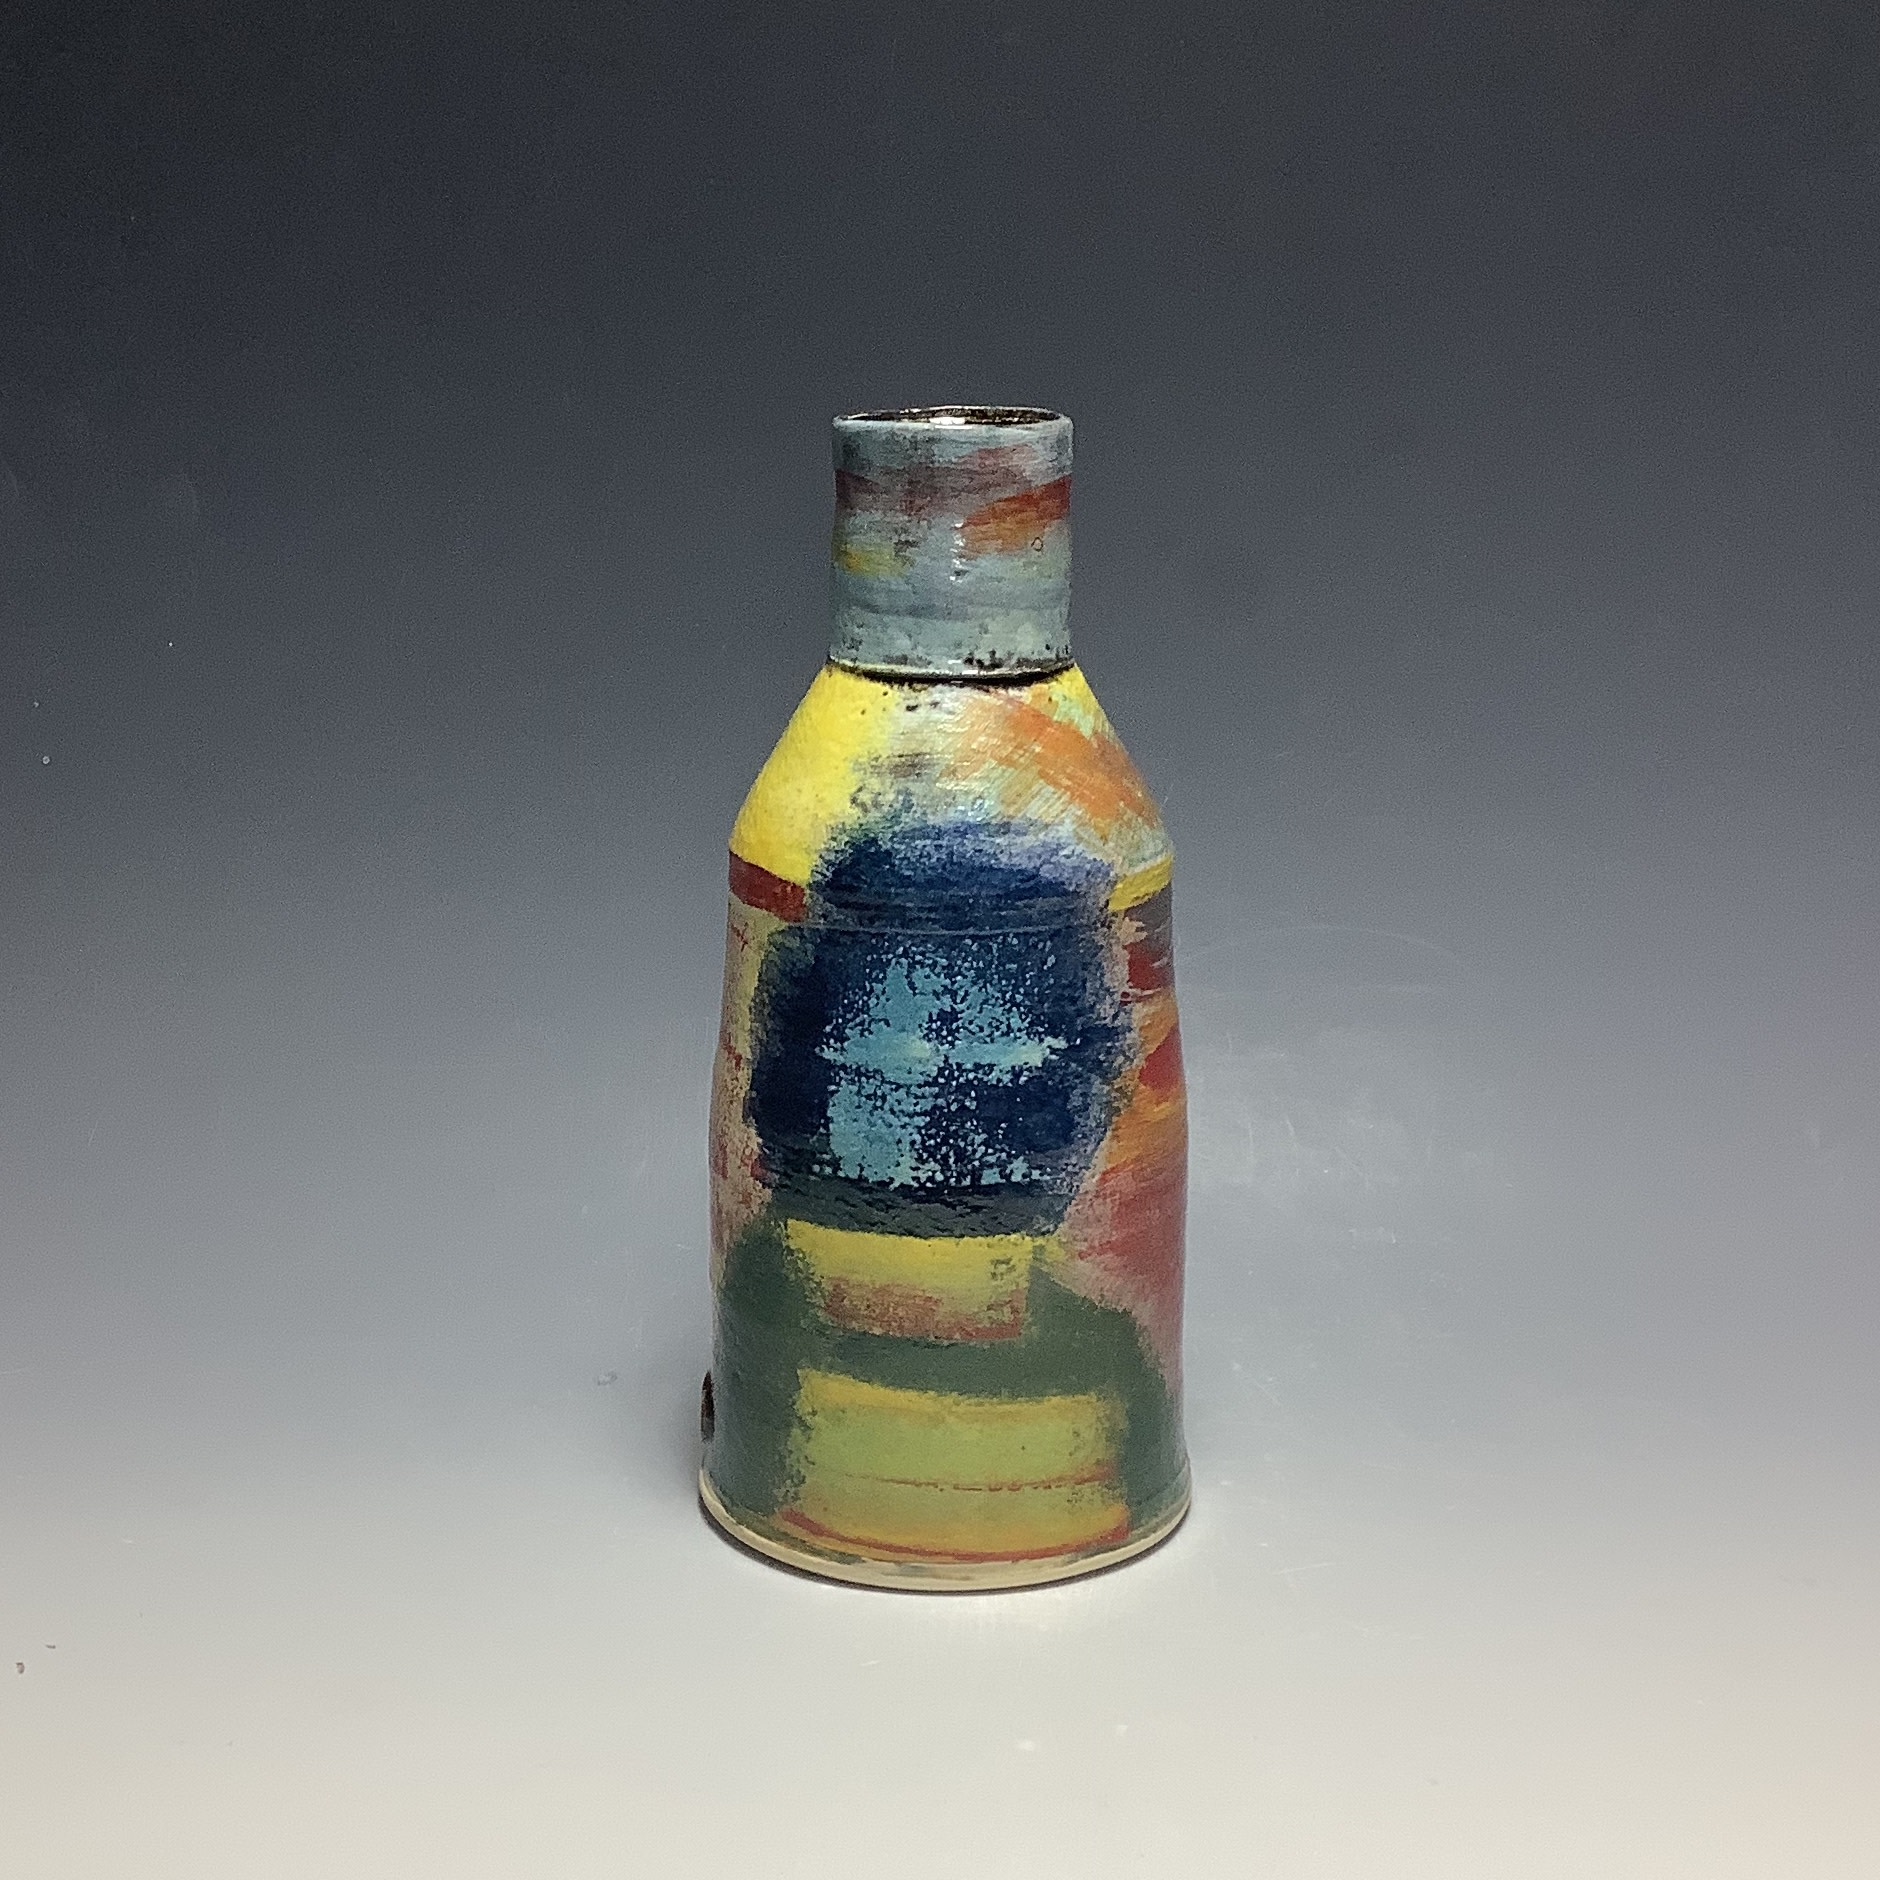 "<span class=""link fancybox-details-link""><a href=""/artists/100-john-pollex/works/6837-john-pollex-small-bottle-2020/"">View Detail Page</a></span><div class=""artist""><strong>John Pollex</strong></div> b. 1941 <div class=""title""><em>Small Bottle</em>, 2020</div> <div class=""signed_and_dated"">impressed with the artist's seal mark 'JP'</div> <div class=""medium"">white earthenware decorated with coloured slips</div> <div class=""dimensions"">h. 7.5 in</div><div class=""price"">£176.00</div><div class=""copyright_line"">Ownart: £176 x 10 Months, 0% APR</div>"